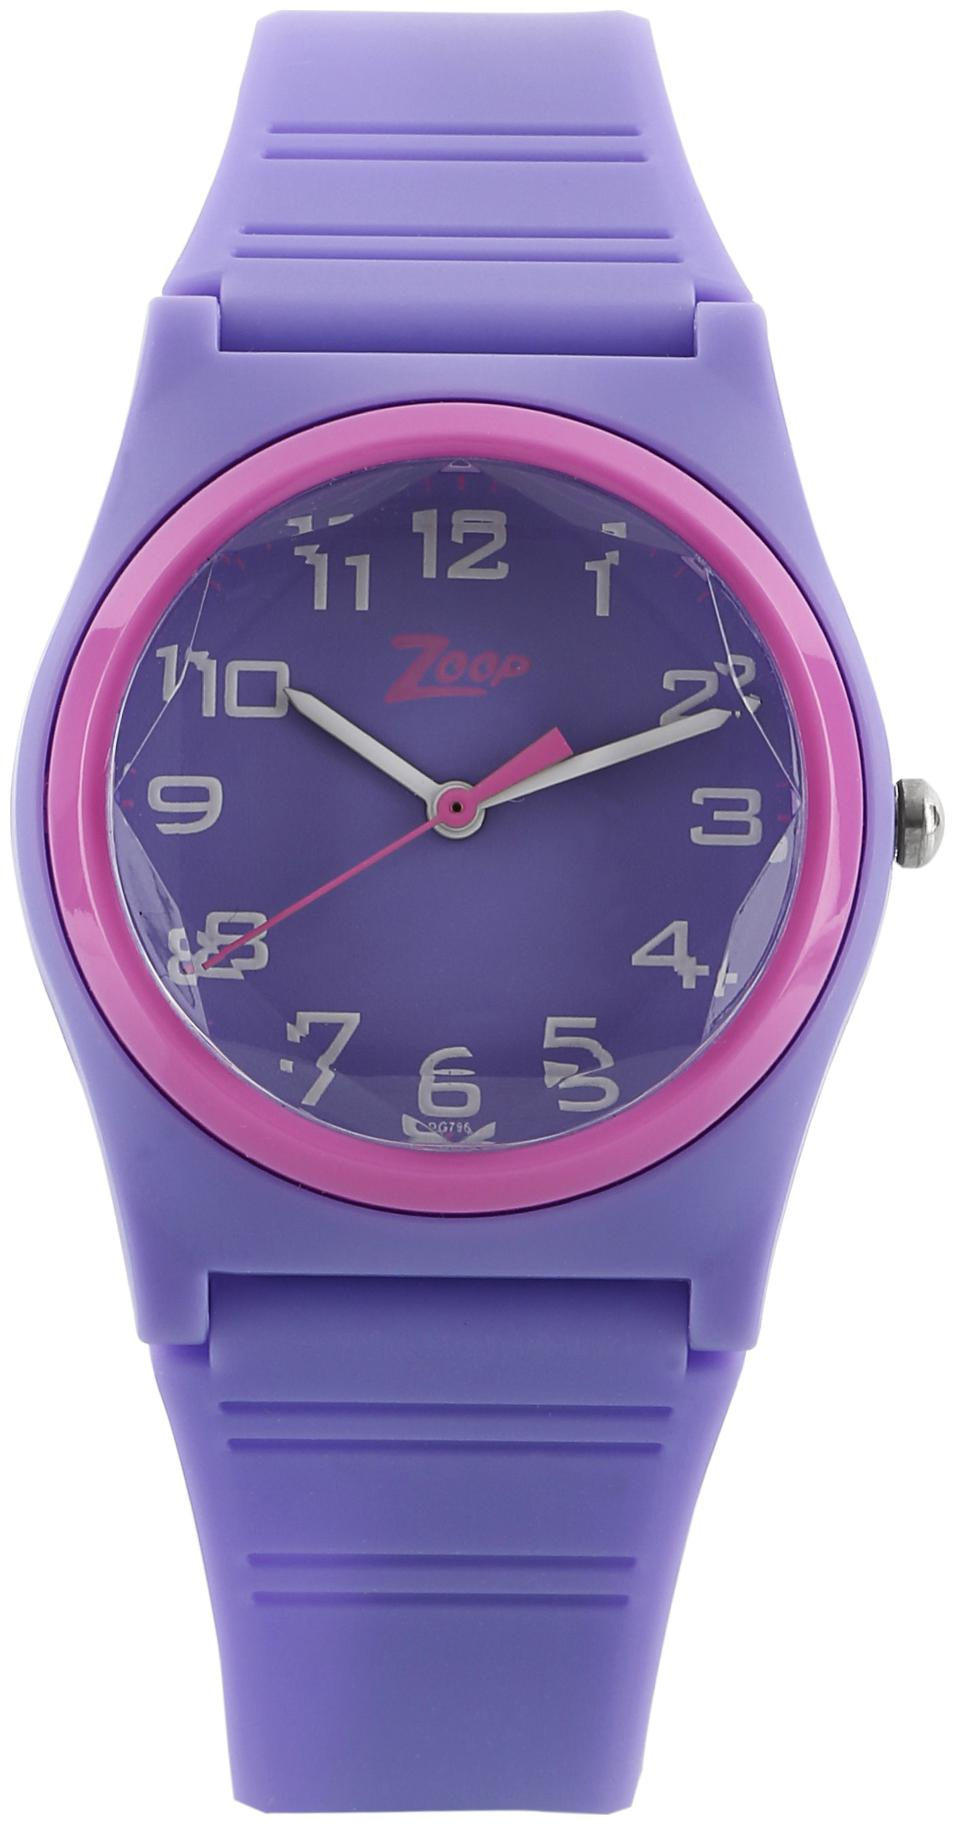 Zoop Purple Dial Analog Watch for Boys